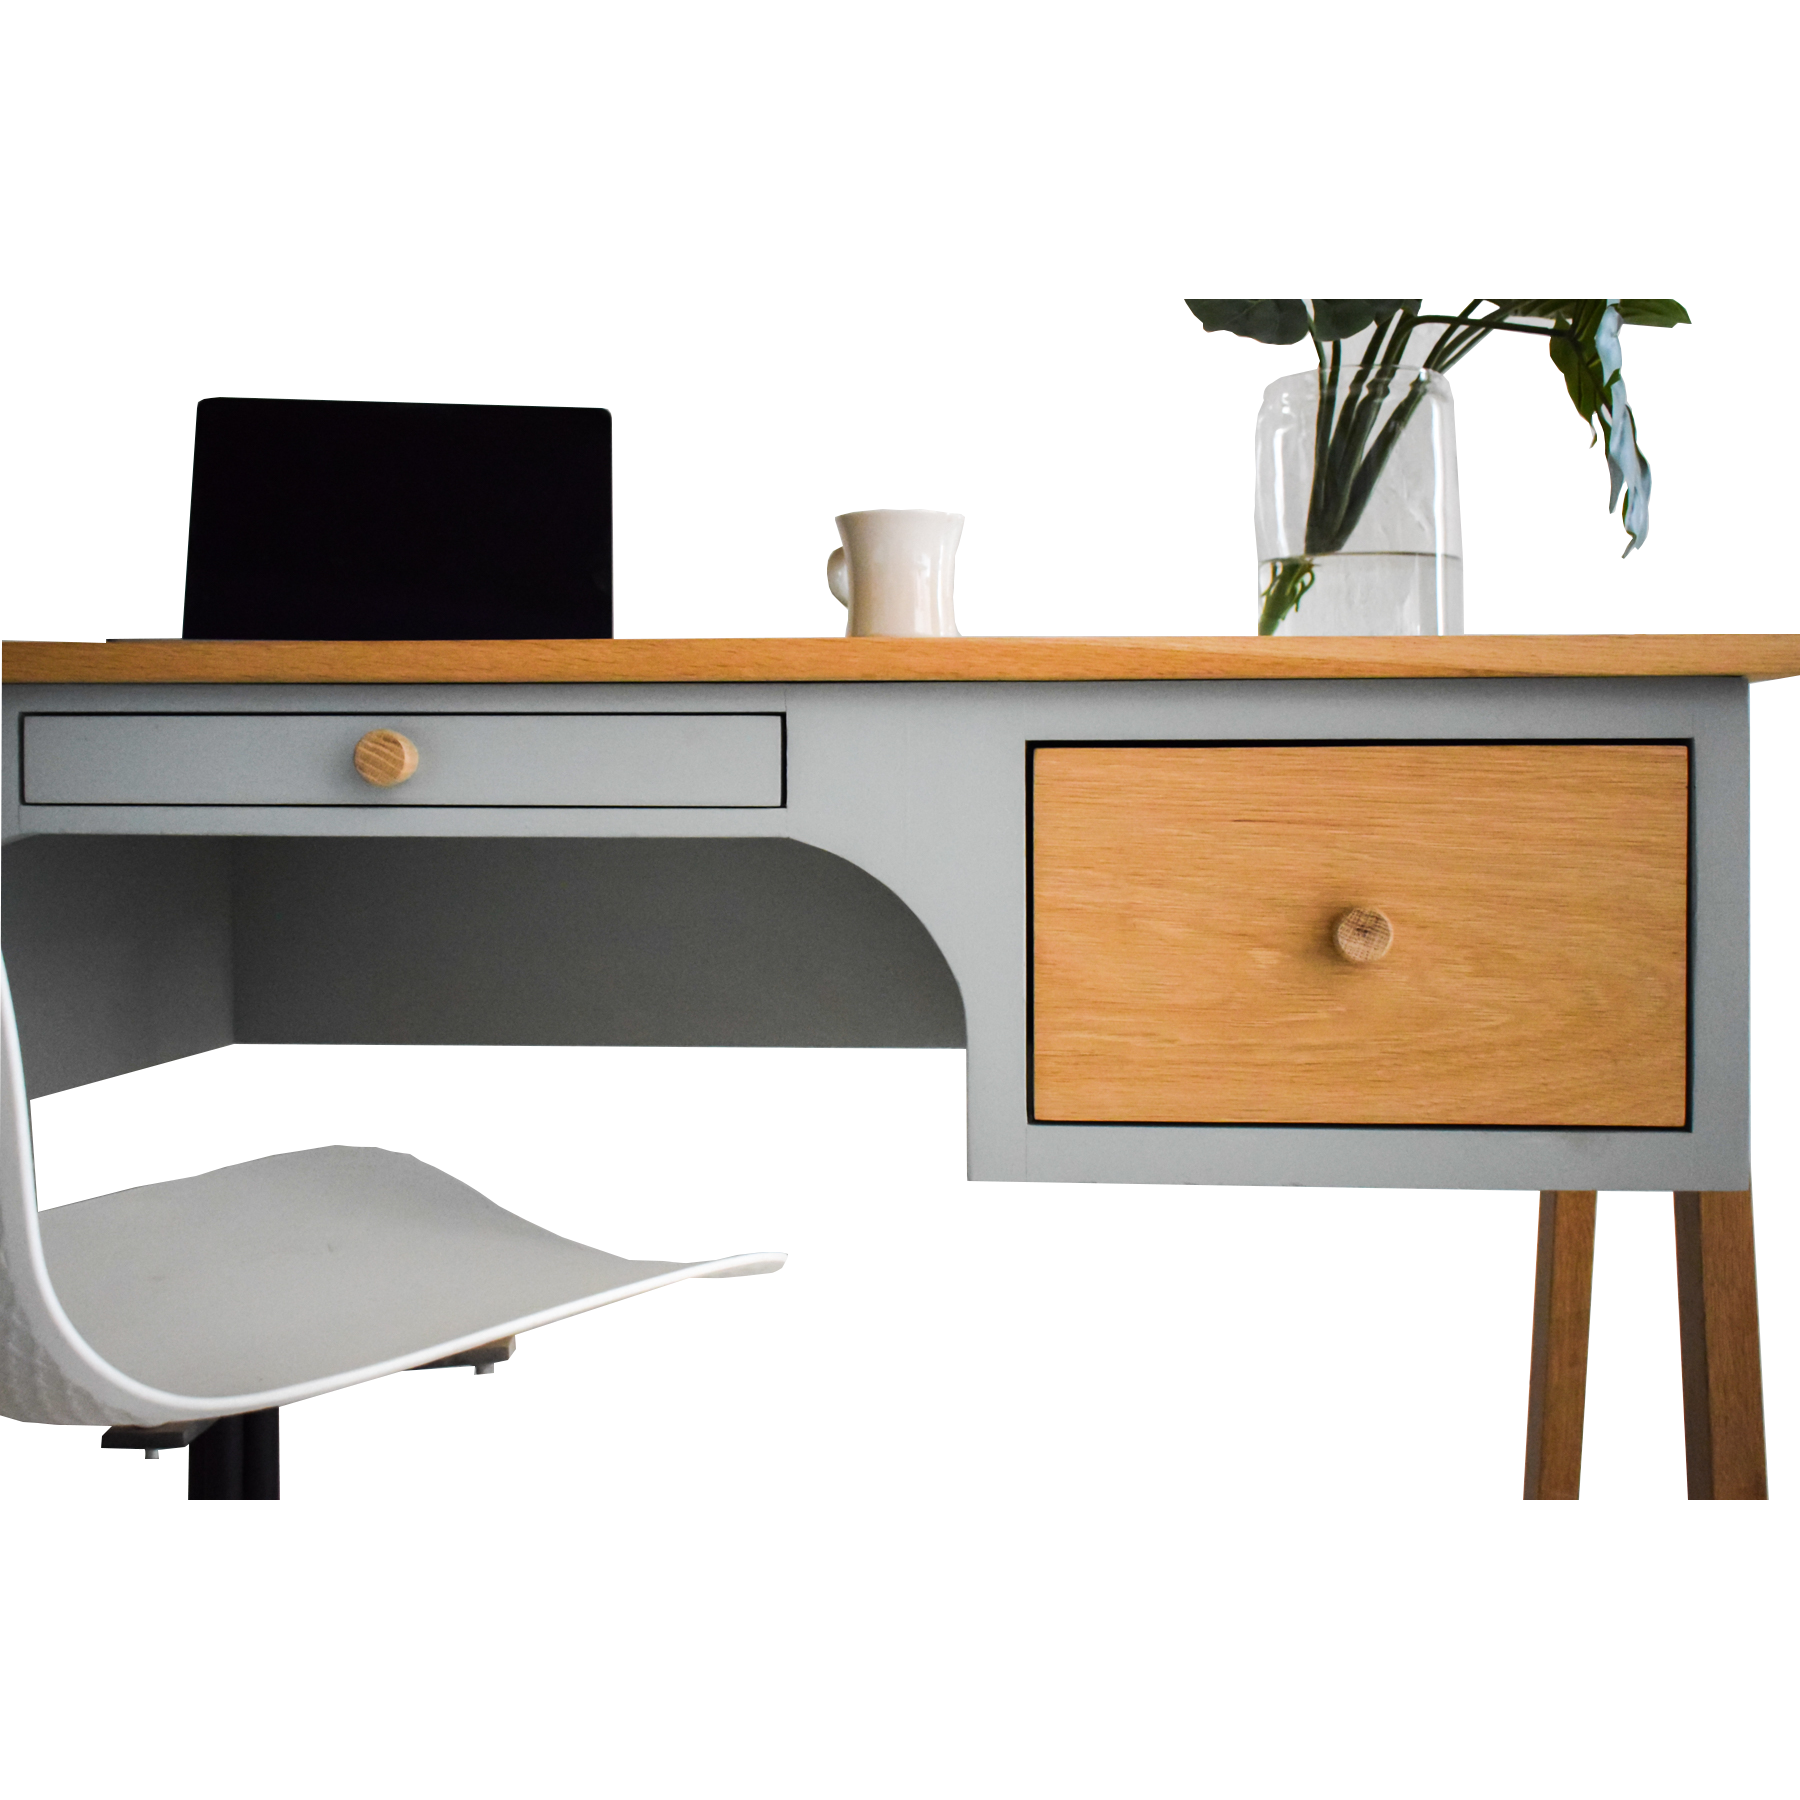 The Danish Desk